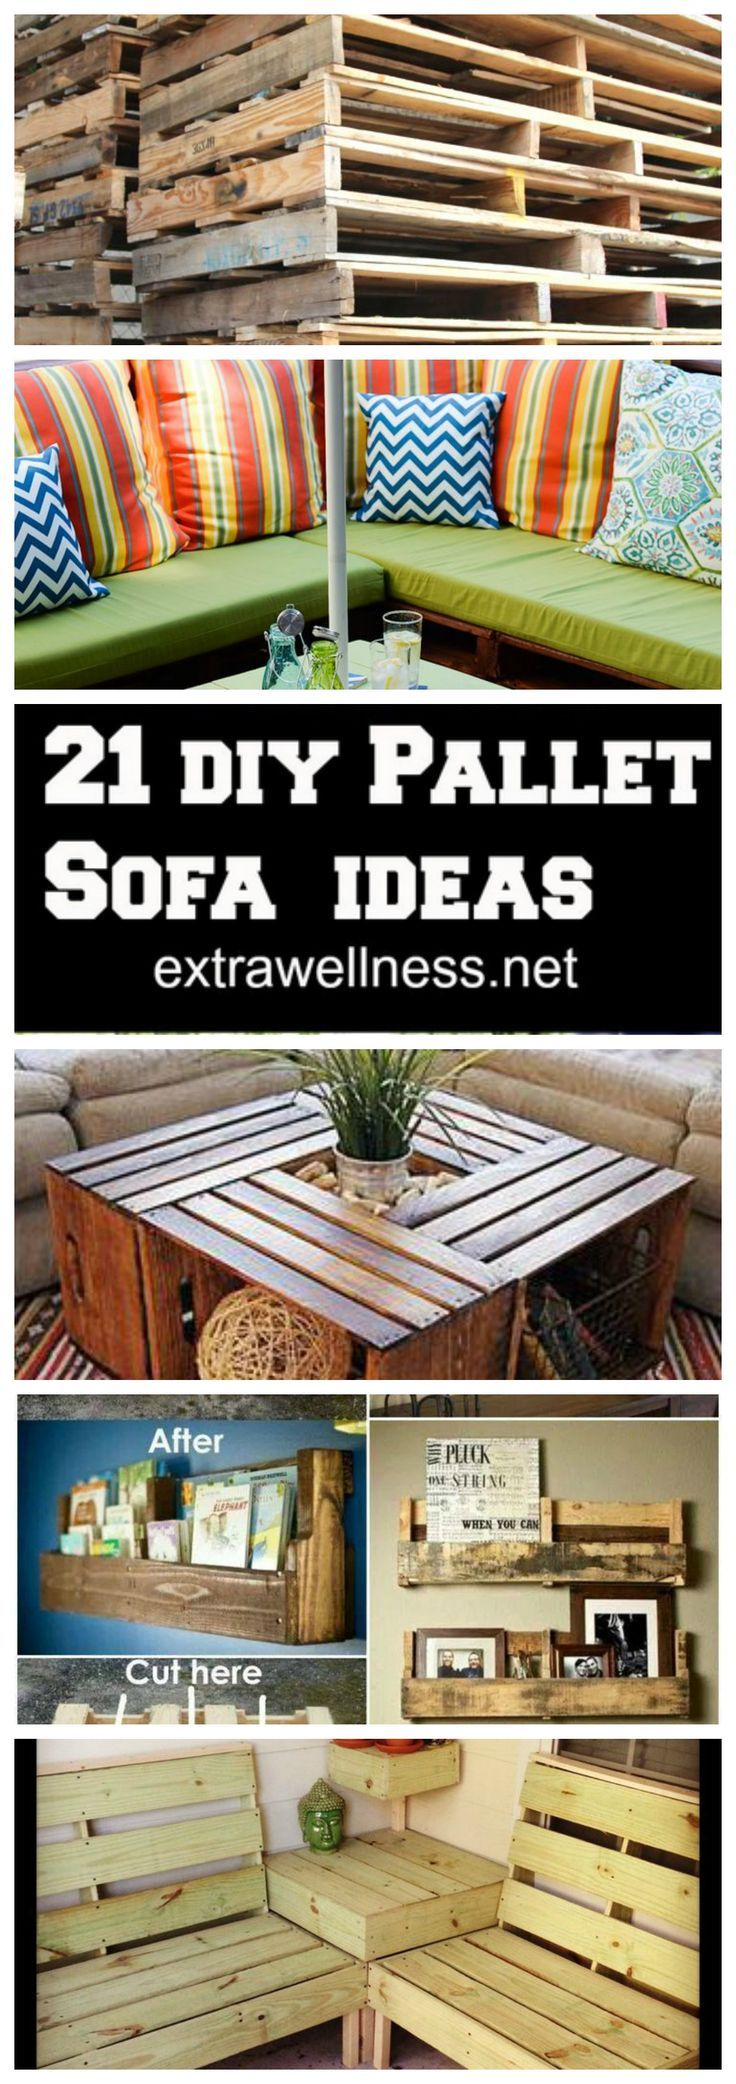 21 Creative DIY Pallet Furniture Hacks :: upcycle your old Pallet into several cozy sofa couch ideas ---->> http://extrawellness.net/diy-pallet-sofa-plan-and-ideas/